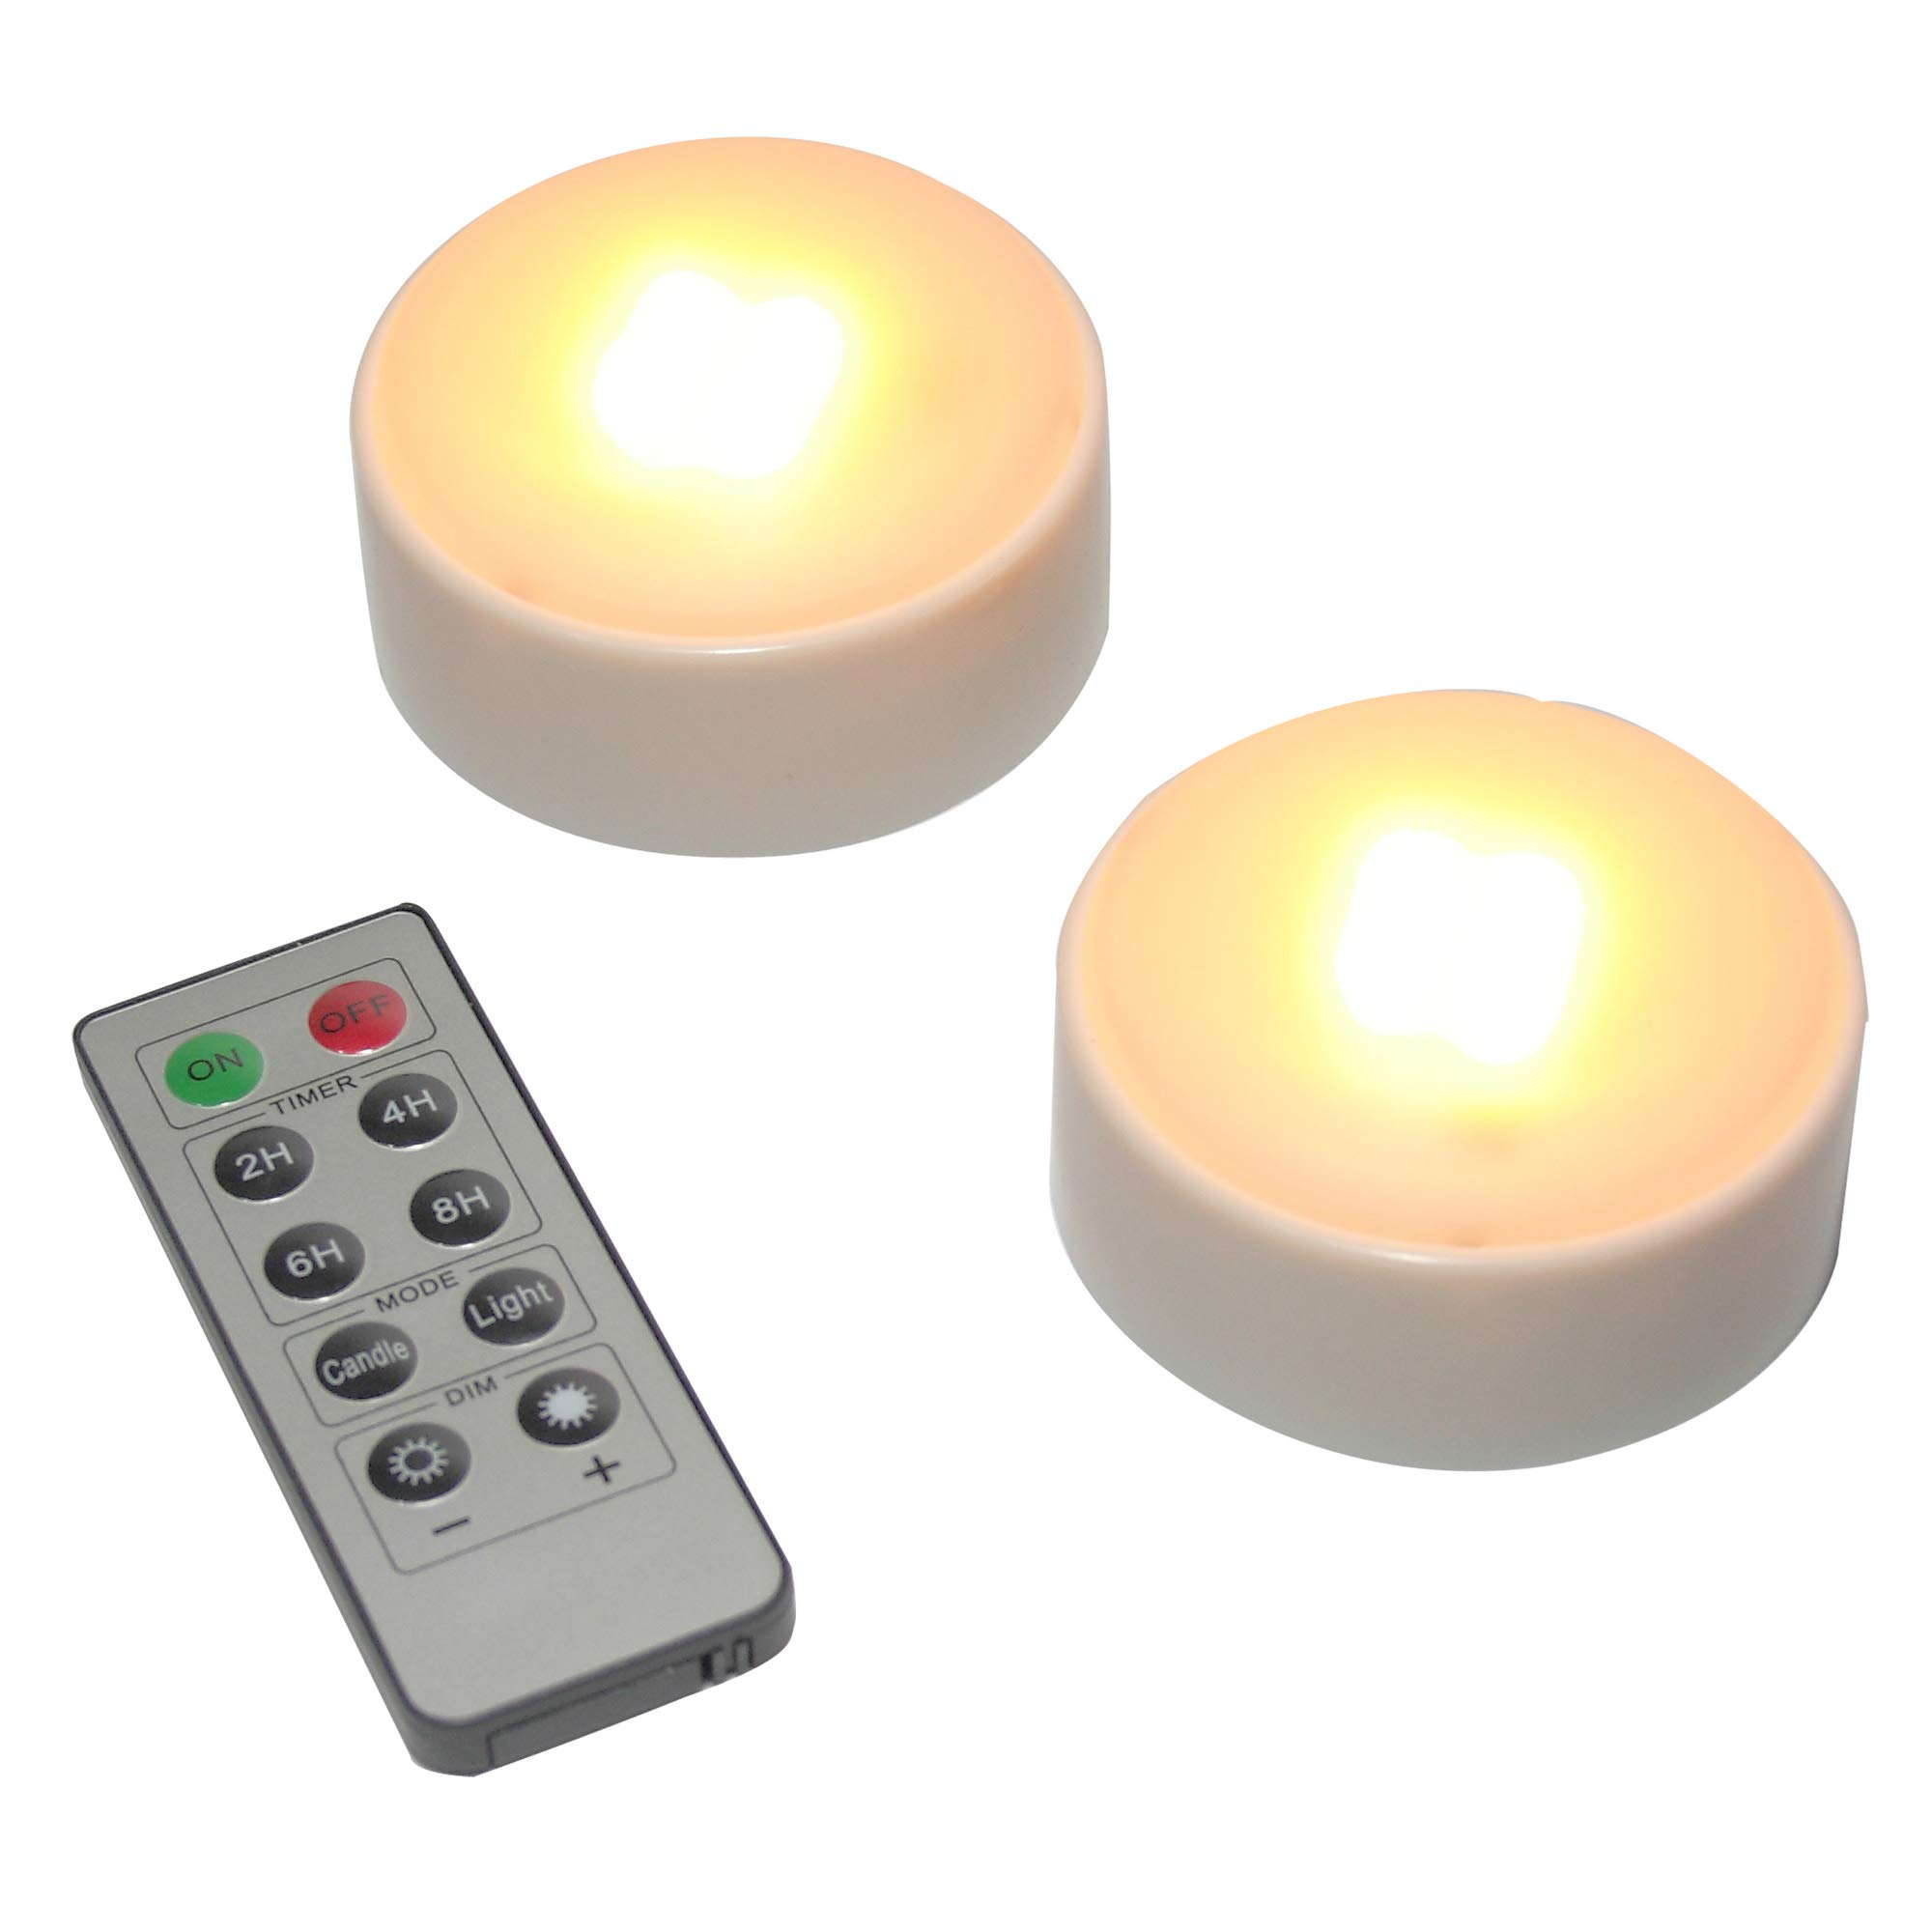 LED Pumpkin Lights with Remote and Timer, Battery Operated Bright Flickering Flameless Candles for Pumpkin Decor, Jack-O-Lantern Halloween Party Decorations, White Color, 2 Pack